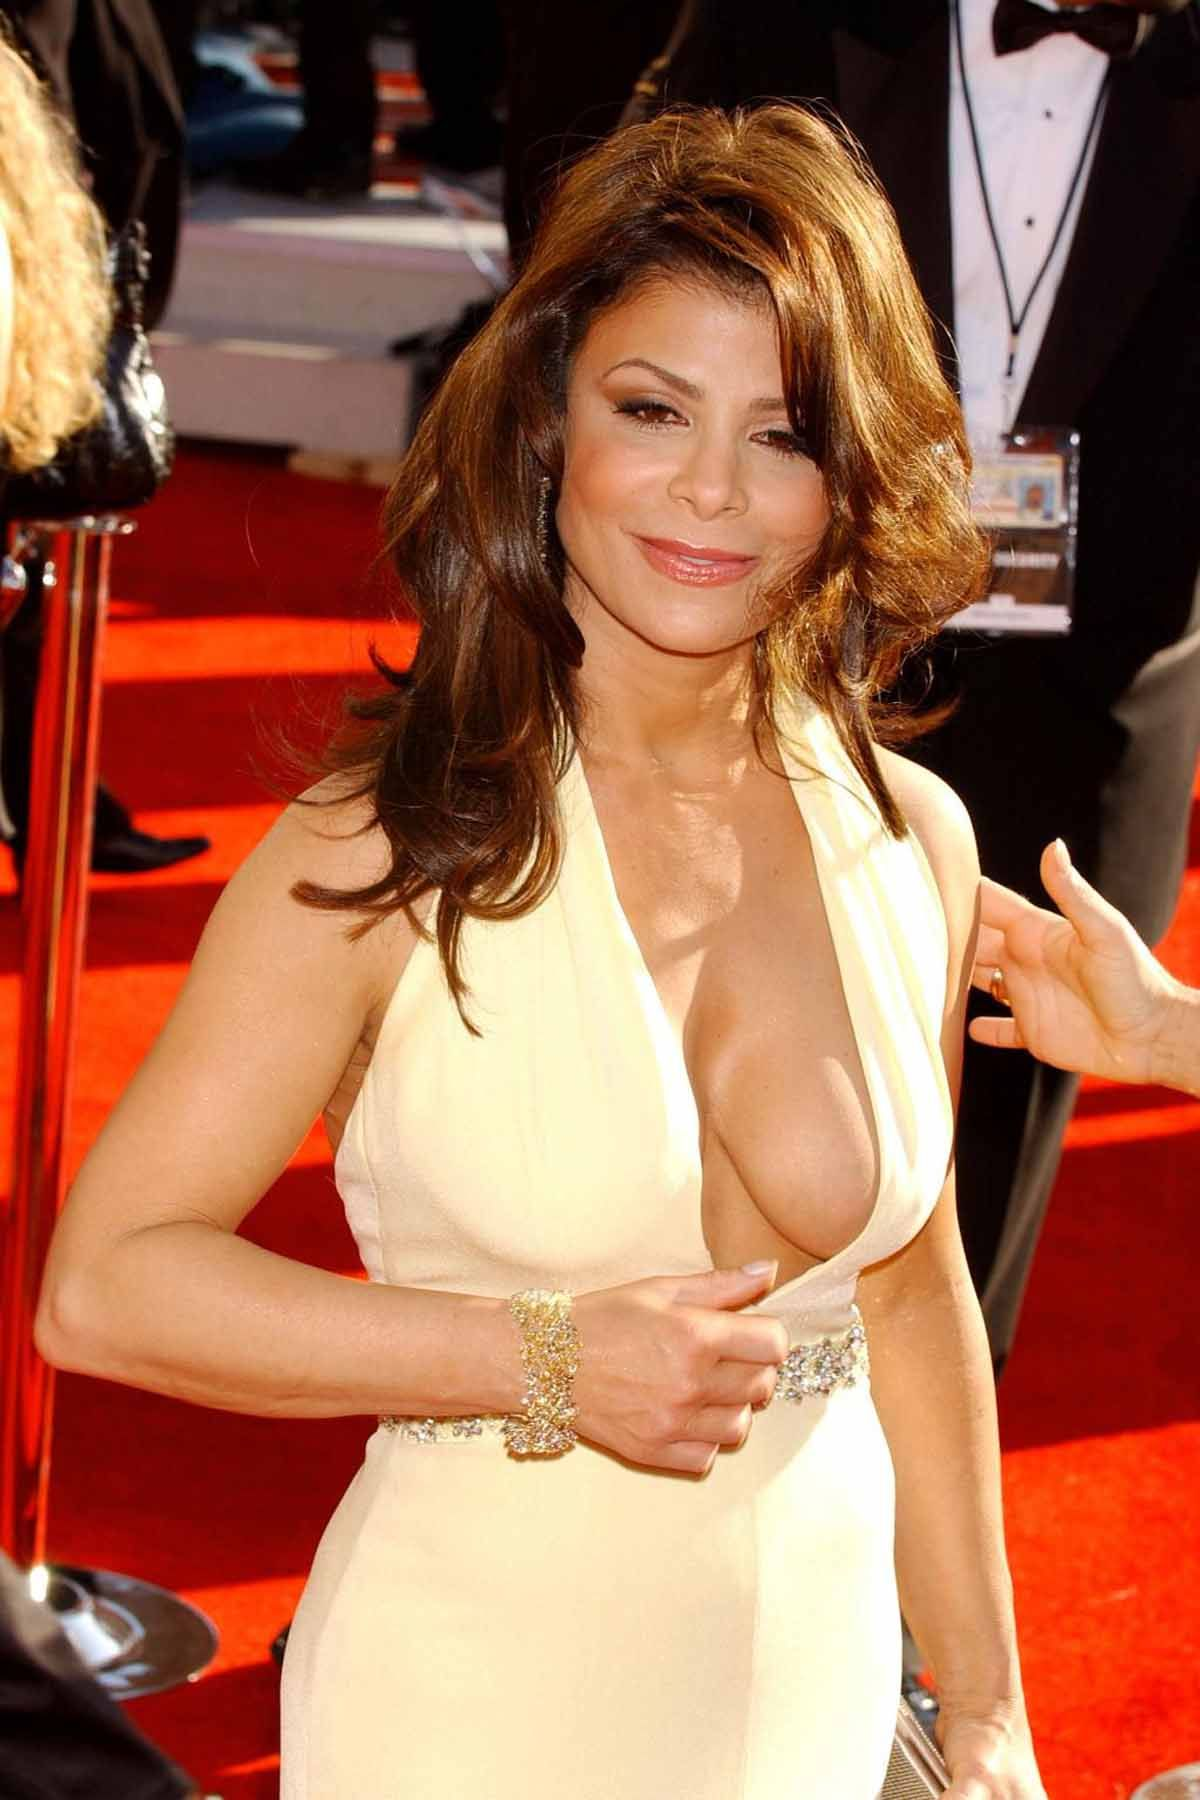 Indian paula abdul having hot sex